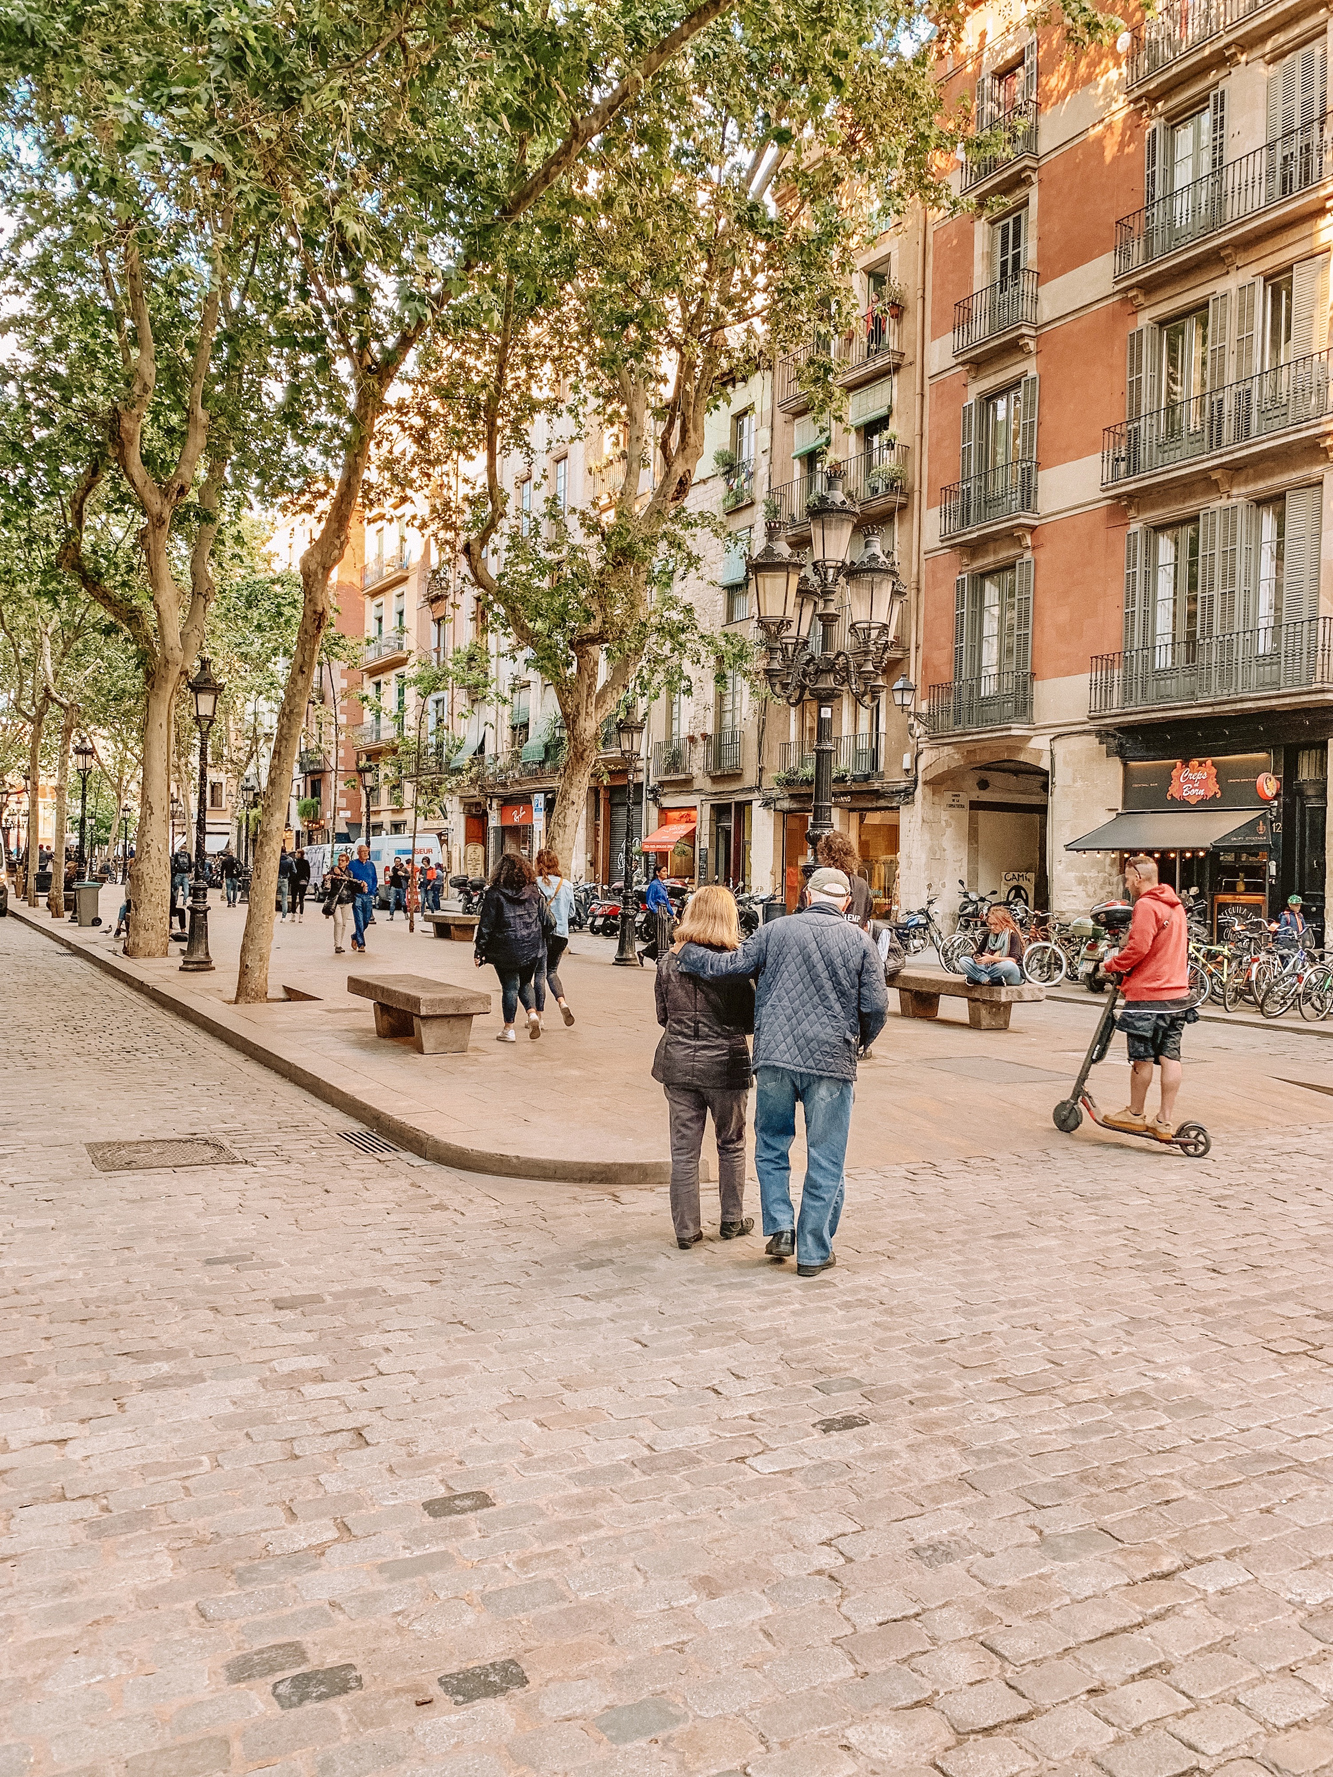 Barcelona Travel Guide - Where to stay, eat and play in one of the most popular cities in Spain! One of our favorite cities.